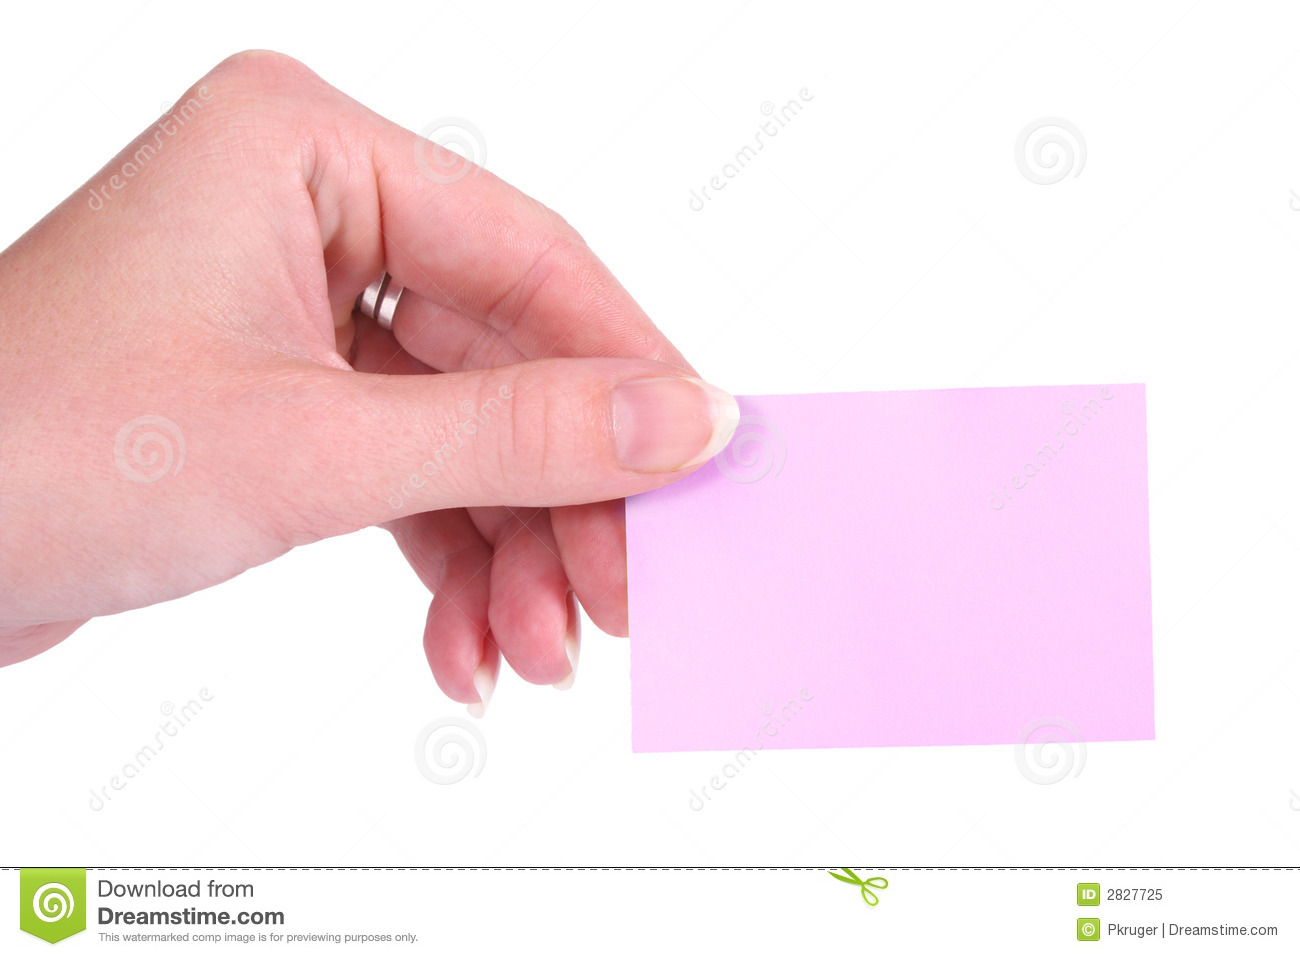 Post-It and hand